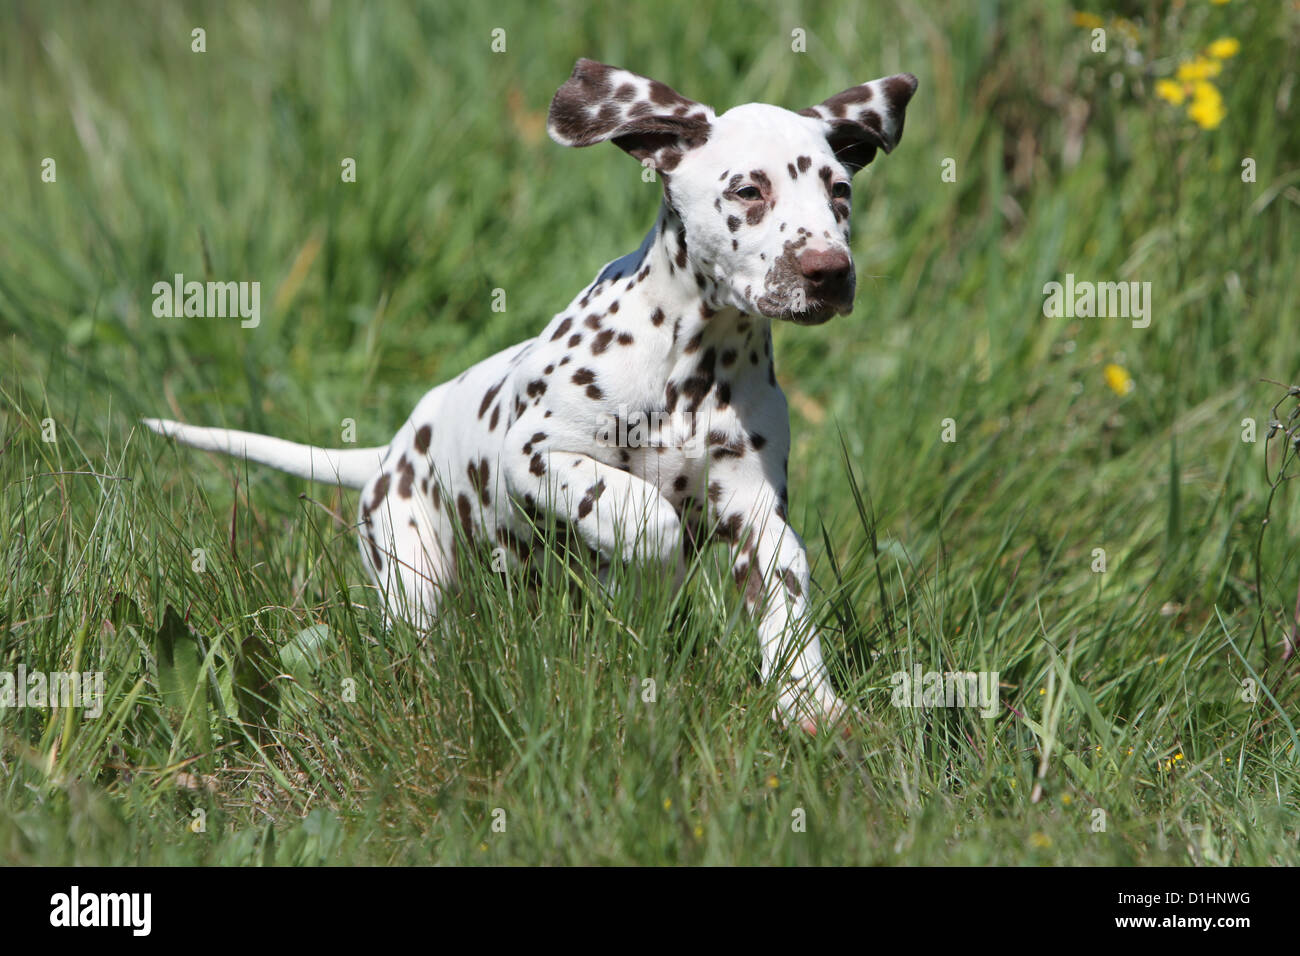 Dog Dalmatian / Dalmatiner / Dalmatien puppy running in a meadow - Stock Image